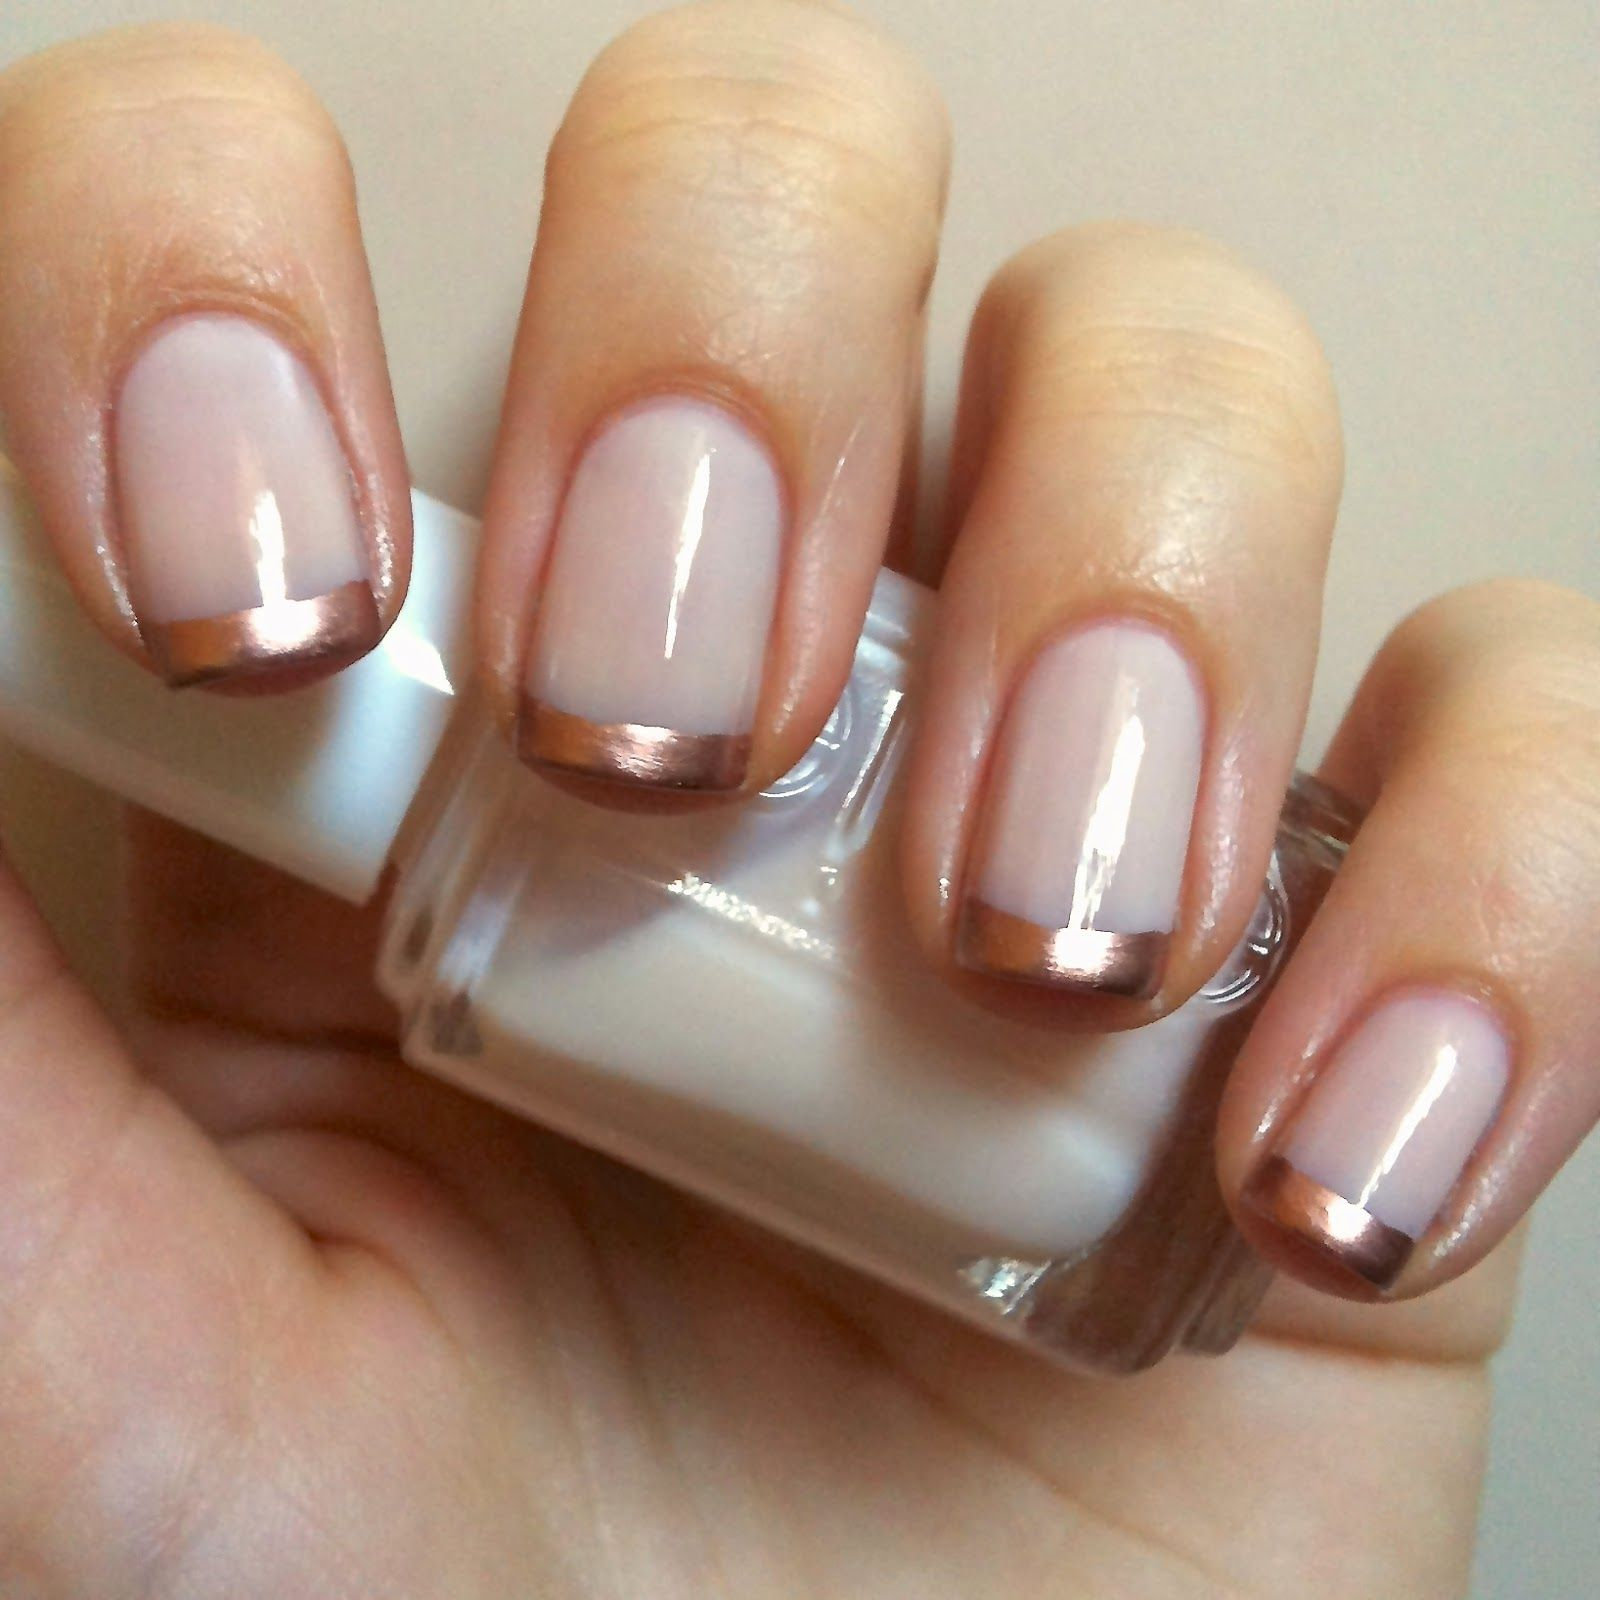 Nails Always Polished: Rose Gold French Manicure with essie Penny ...